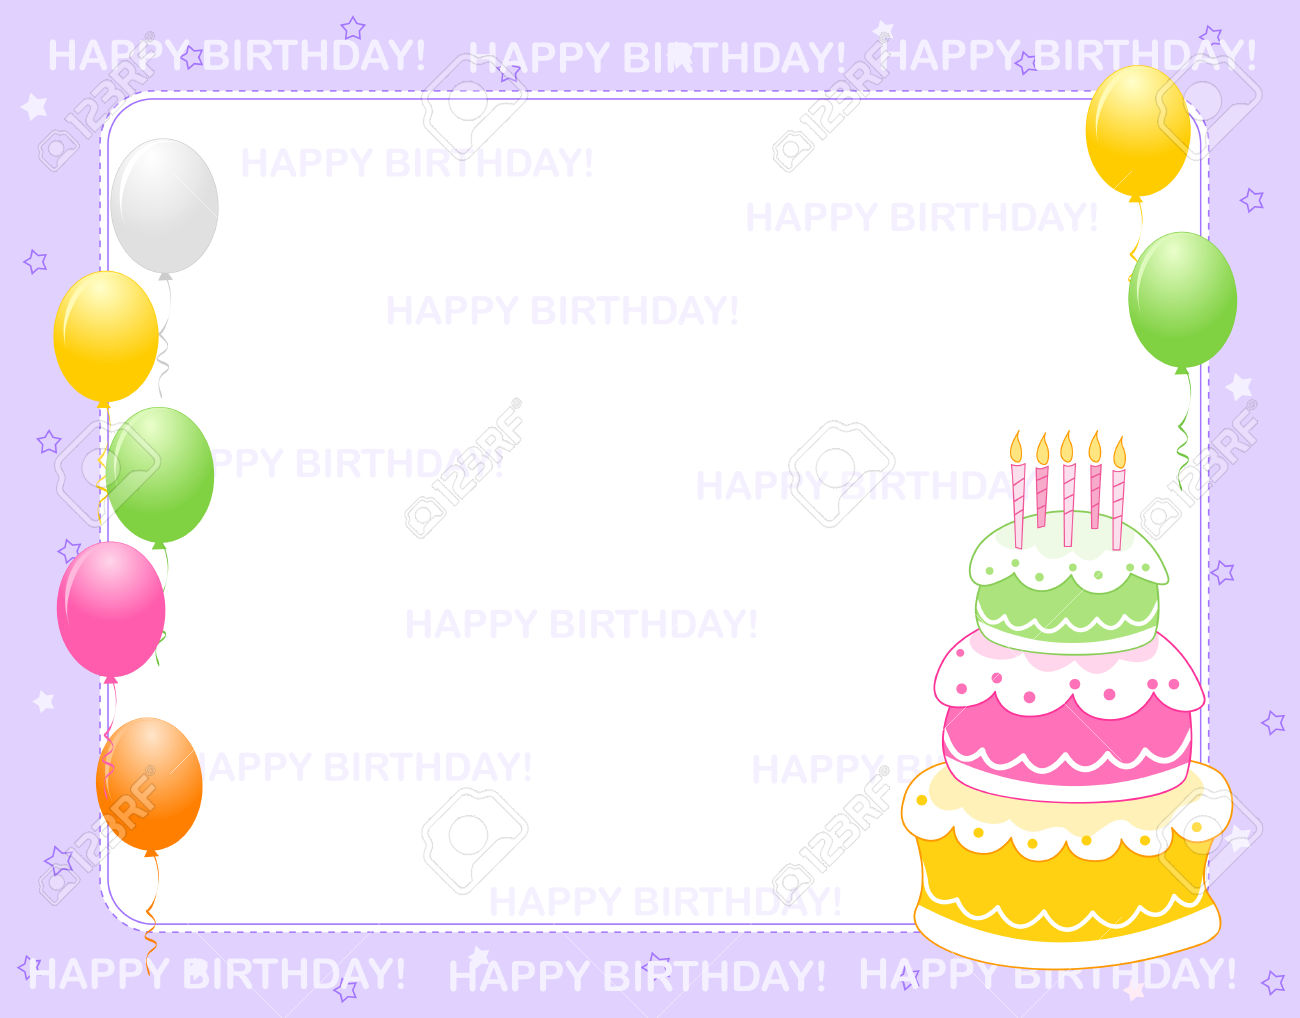 birthday invitation background designs free ; vector-colorful-birthday-card-or-invitation-background-with-happy-birthday-text-and-balloons-and-a-birth-day-cake-happy-birthday-invitation-cards